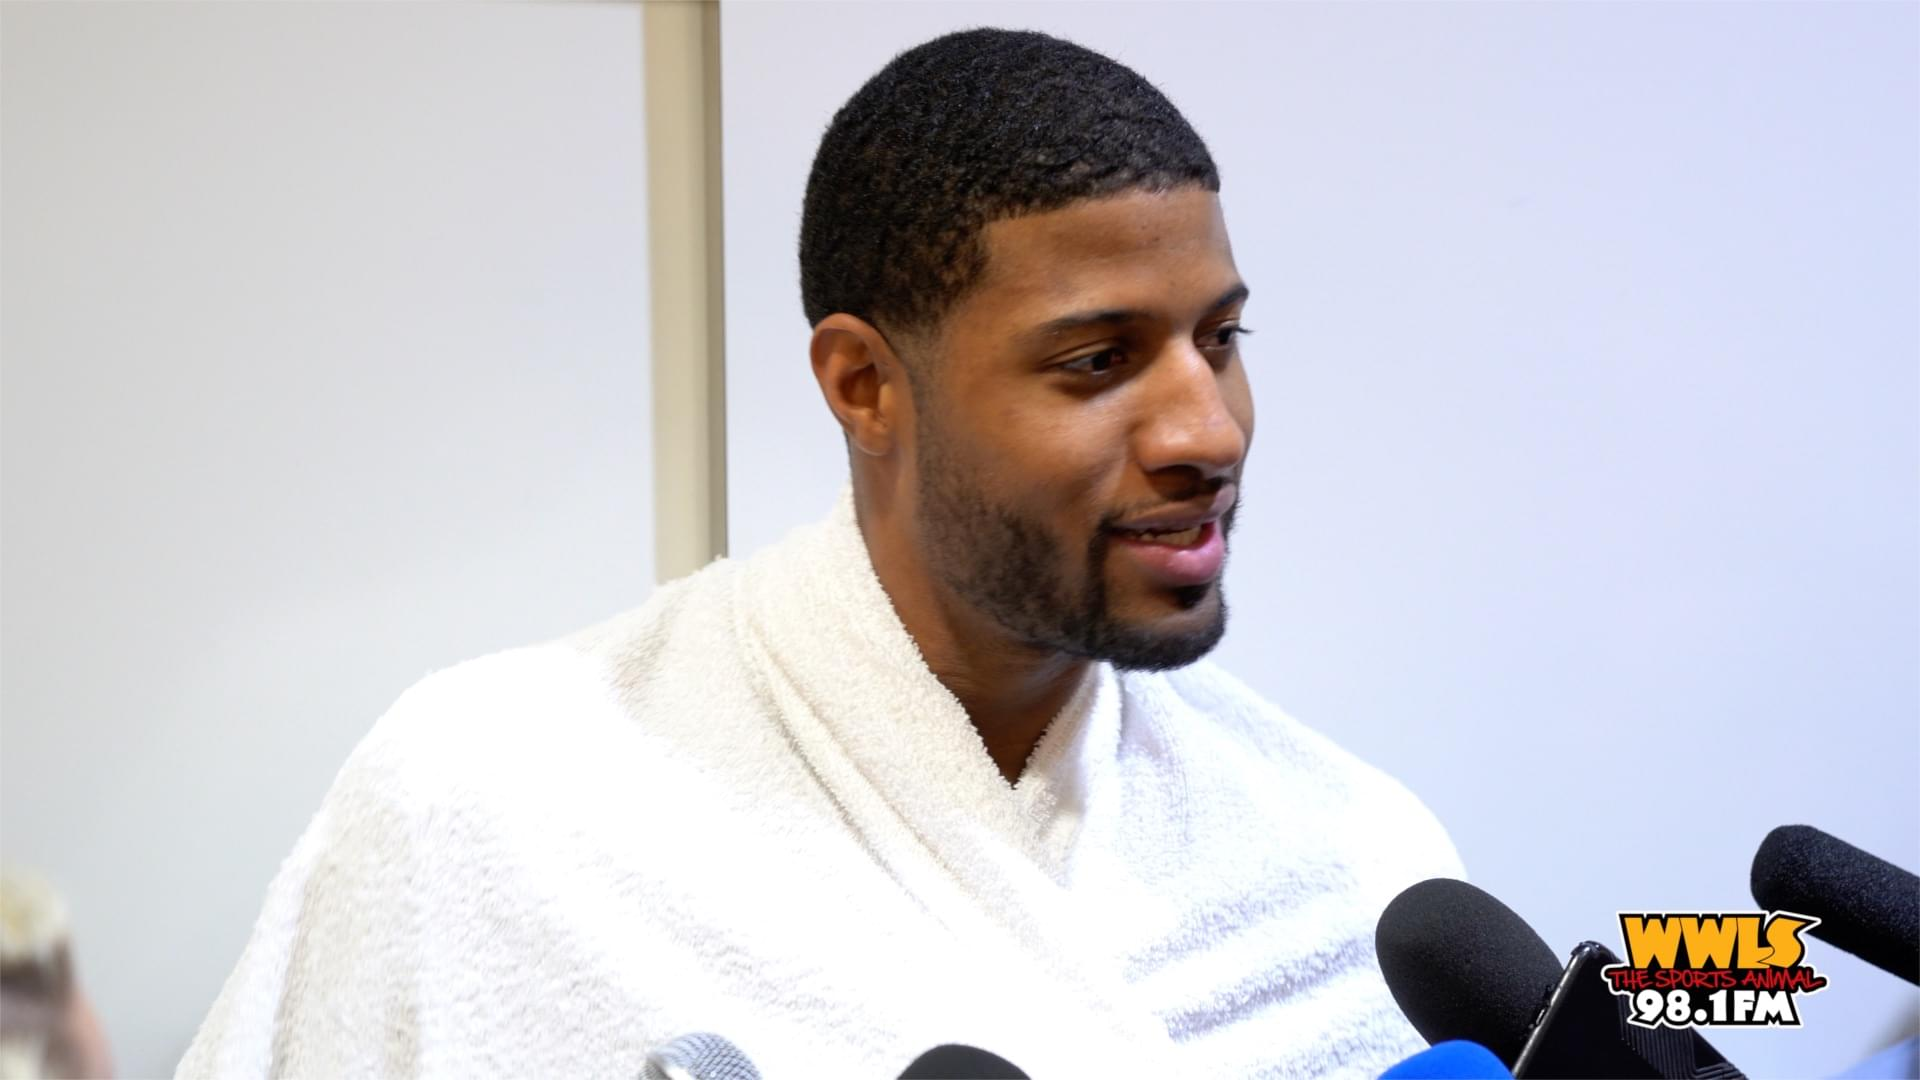 PAUL GEORGE DISCUSSES WIN OVER TRAIL BLAZERS